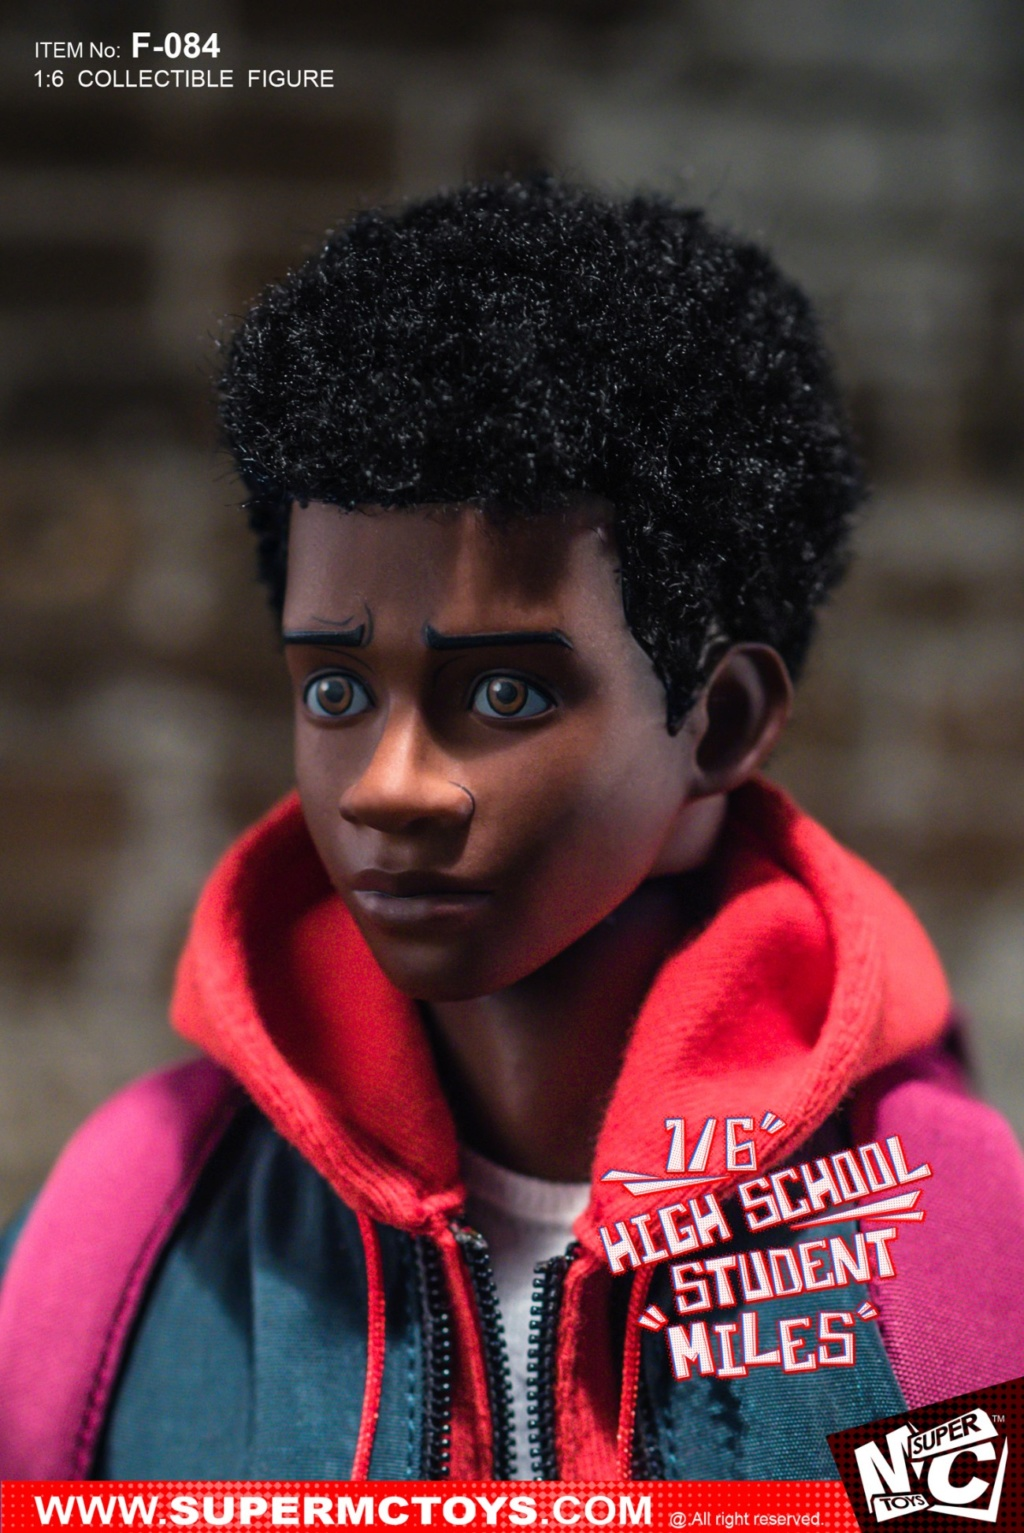 male - NEW PRODUCT: SUPERMCTOYS: 1/6 High School Students - Little Black Miles Miles Movable F-084# 19373510